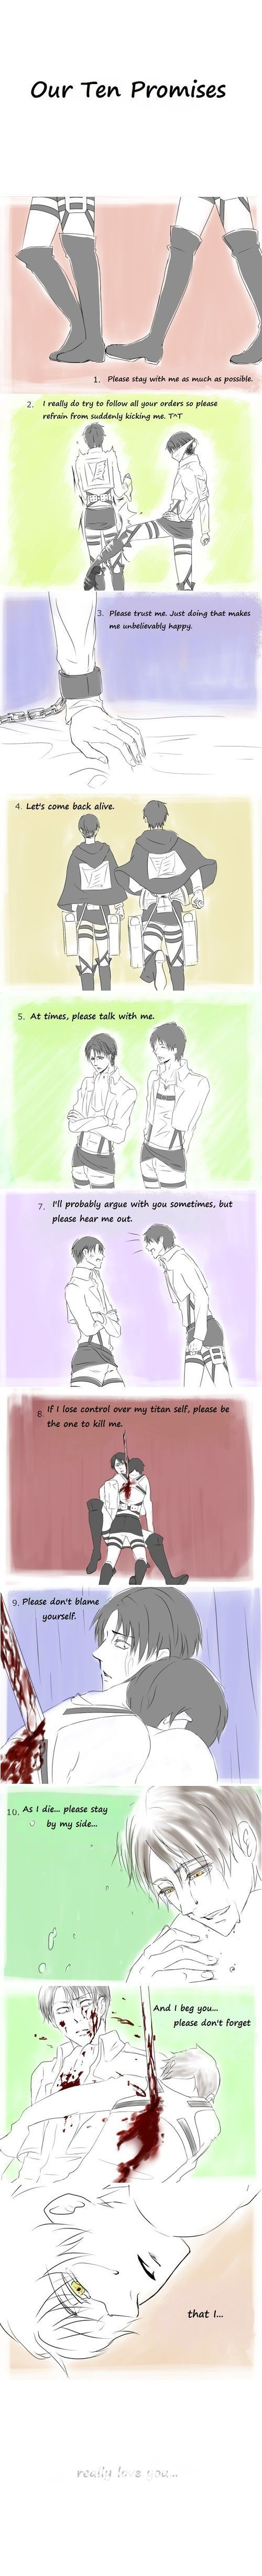 Our 10 Promises. Attack on Titan comic. original by: 驟雨 / translated by: miwithmi Eren and Levi many feels...: